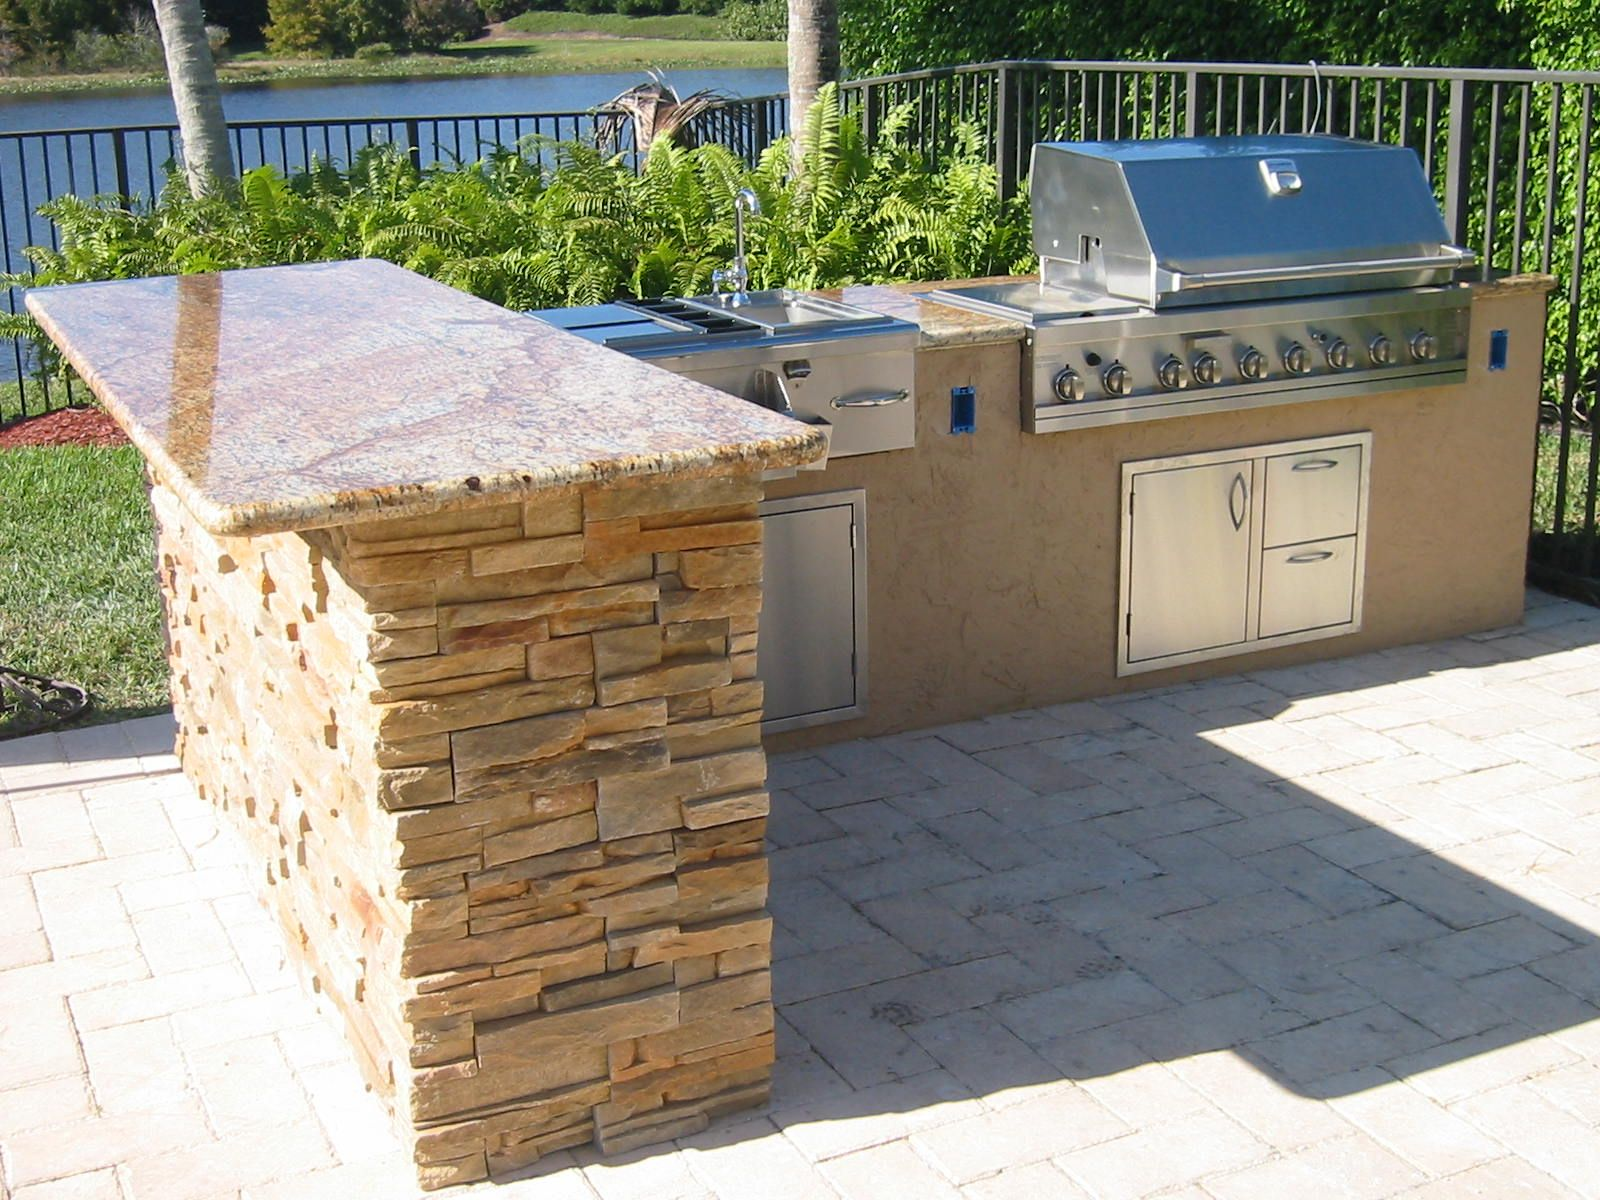 Buildingkitchen Island On Custom Outdoor Kitchen Ideas And Built In Bbq Grill Heads For Islands